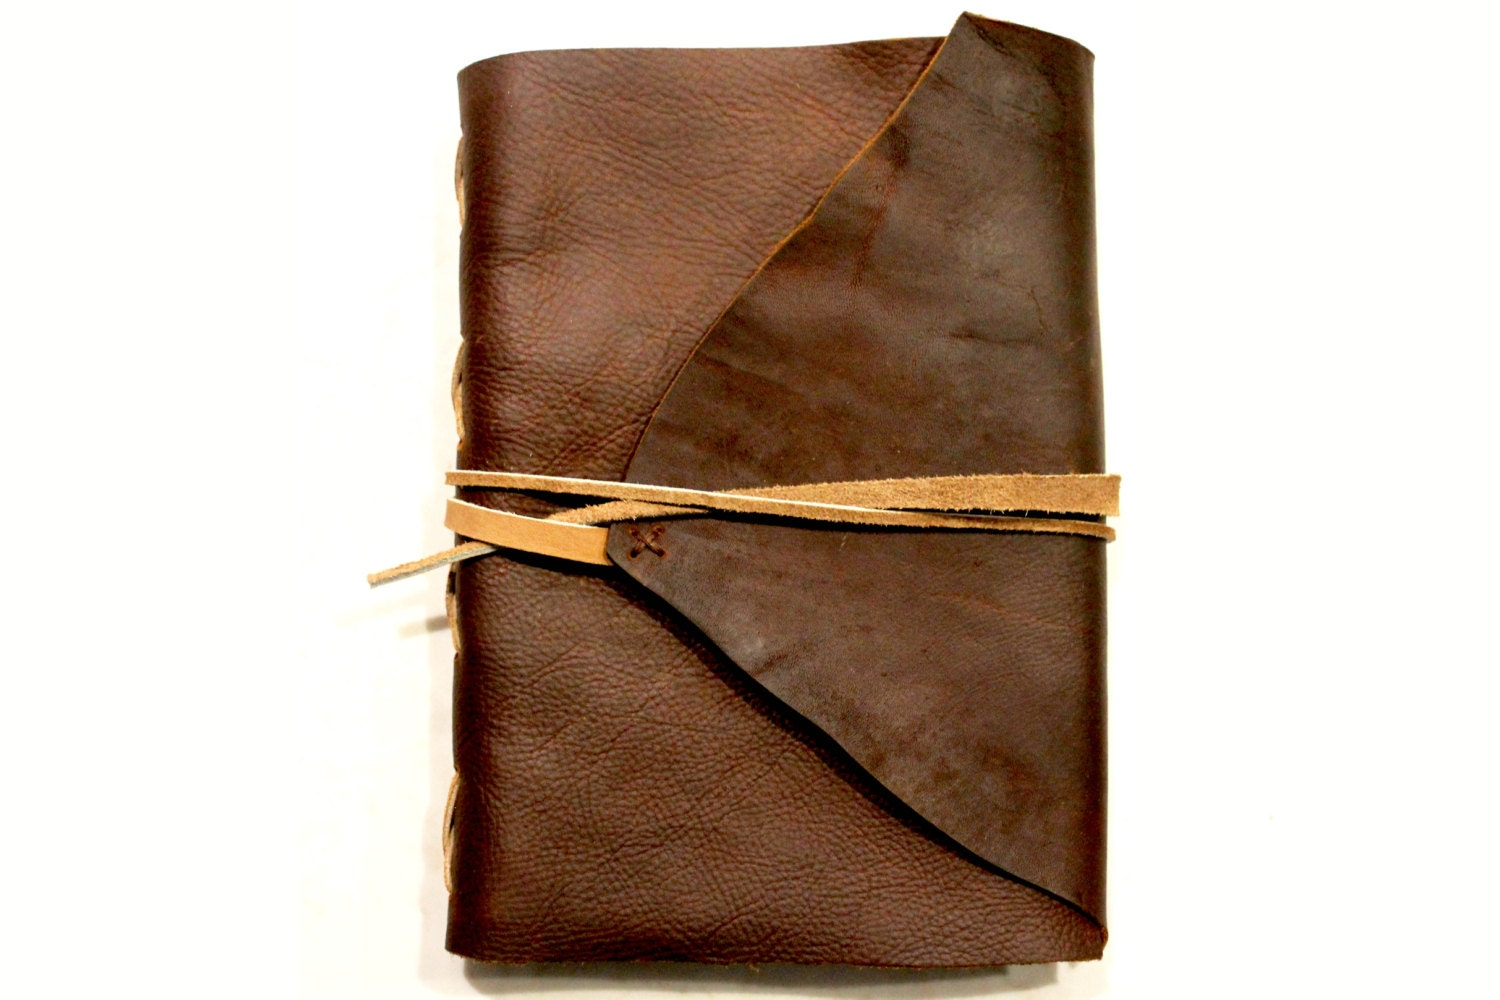 Peyton Street Pens - Vintage Restored and New Old Stock Handcrafted leather photo album